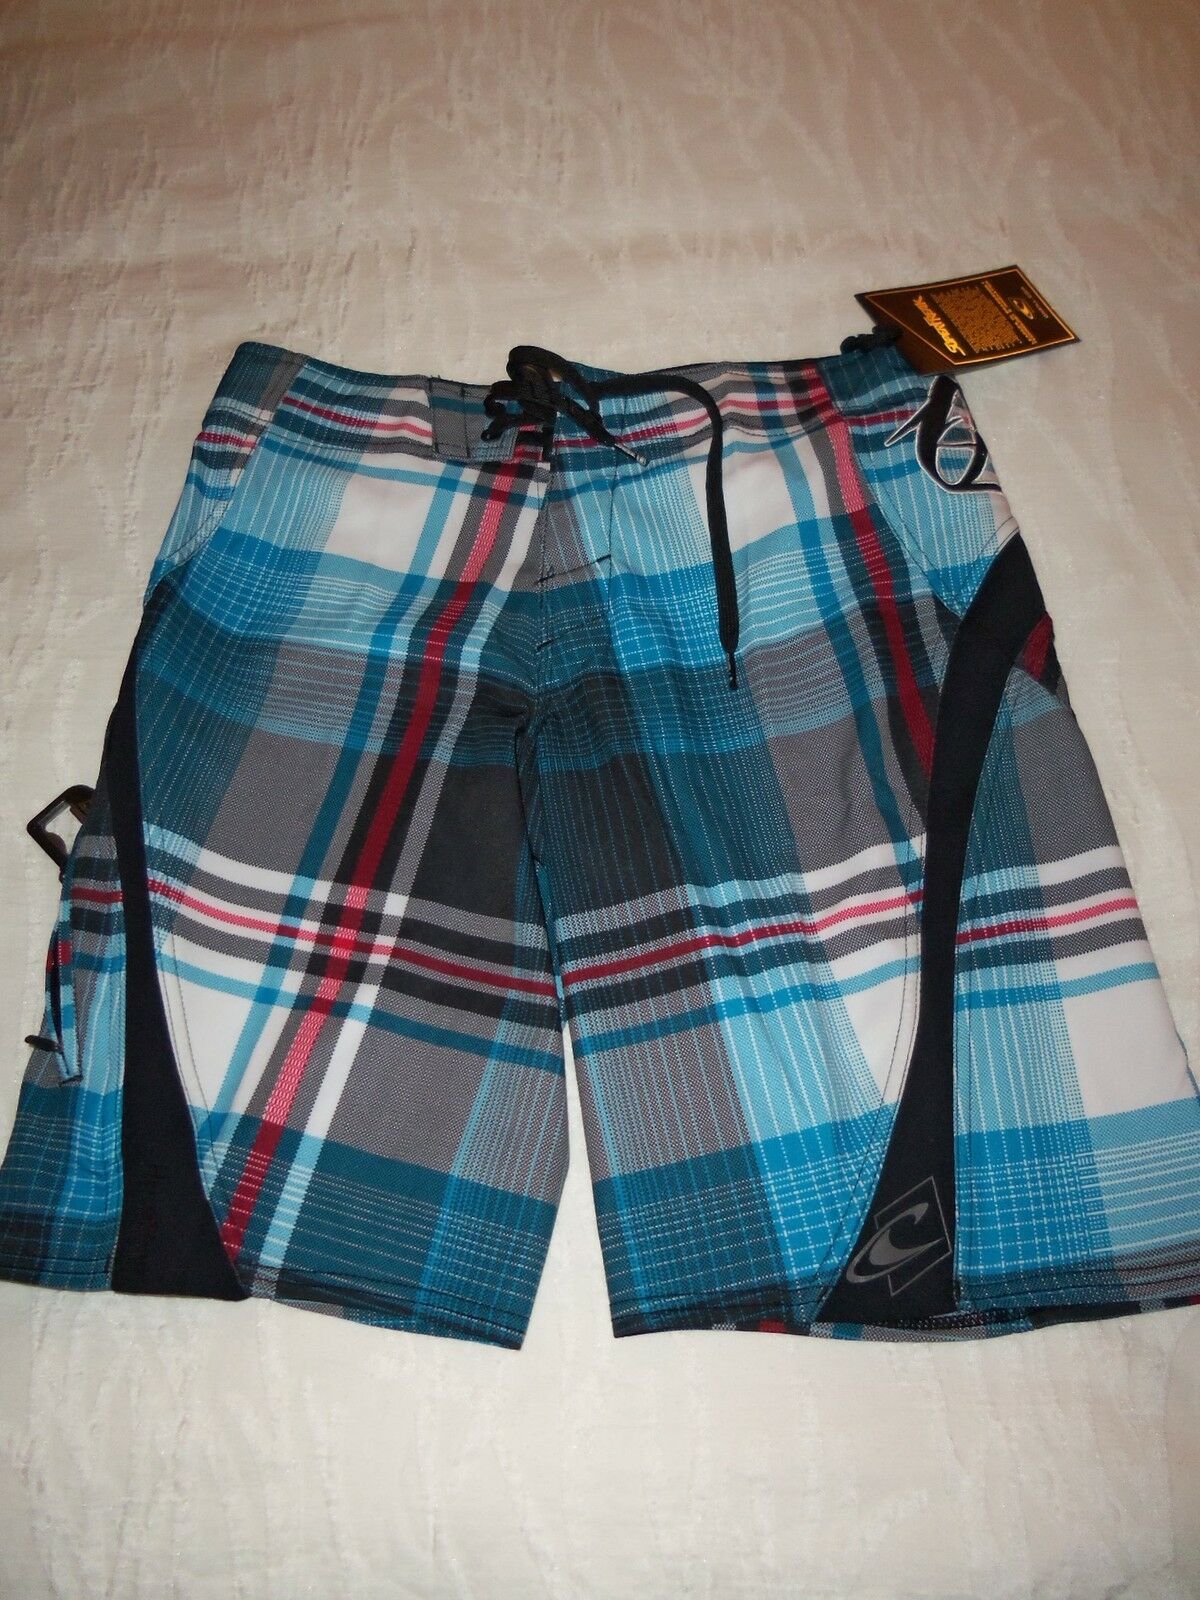 O'NEILL  SUPER FREAK  SWIM SURF BOARD SHORTS PLAID MULTI-COLOR size 28